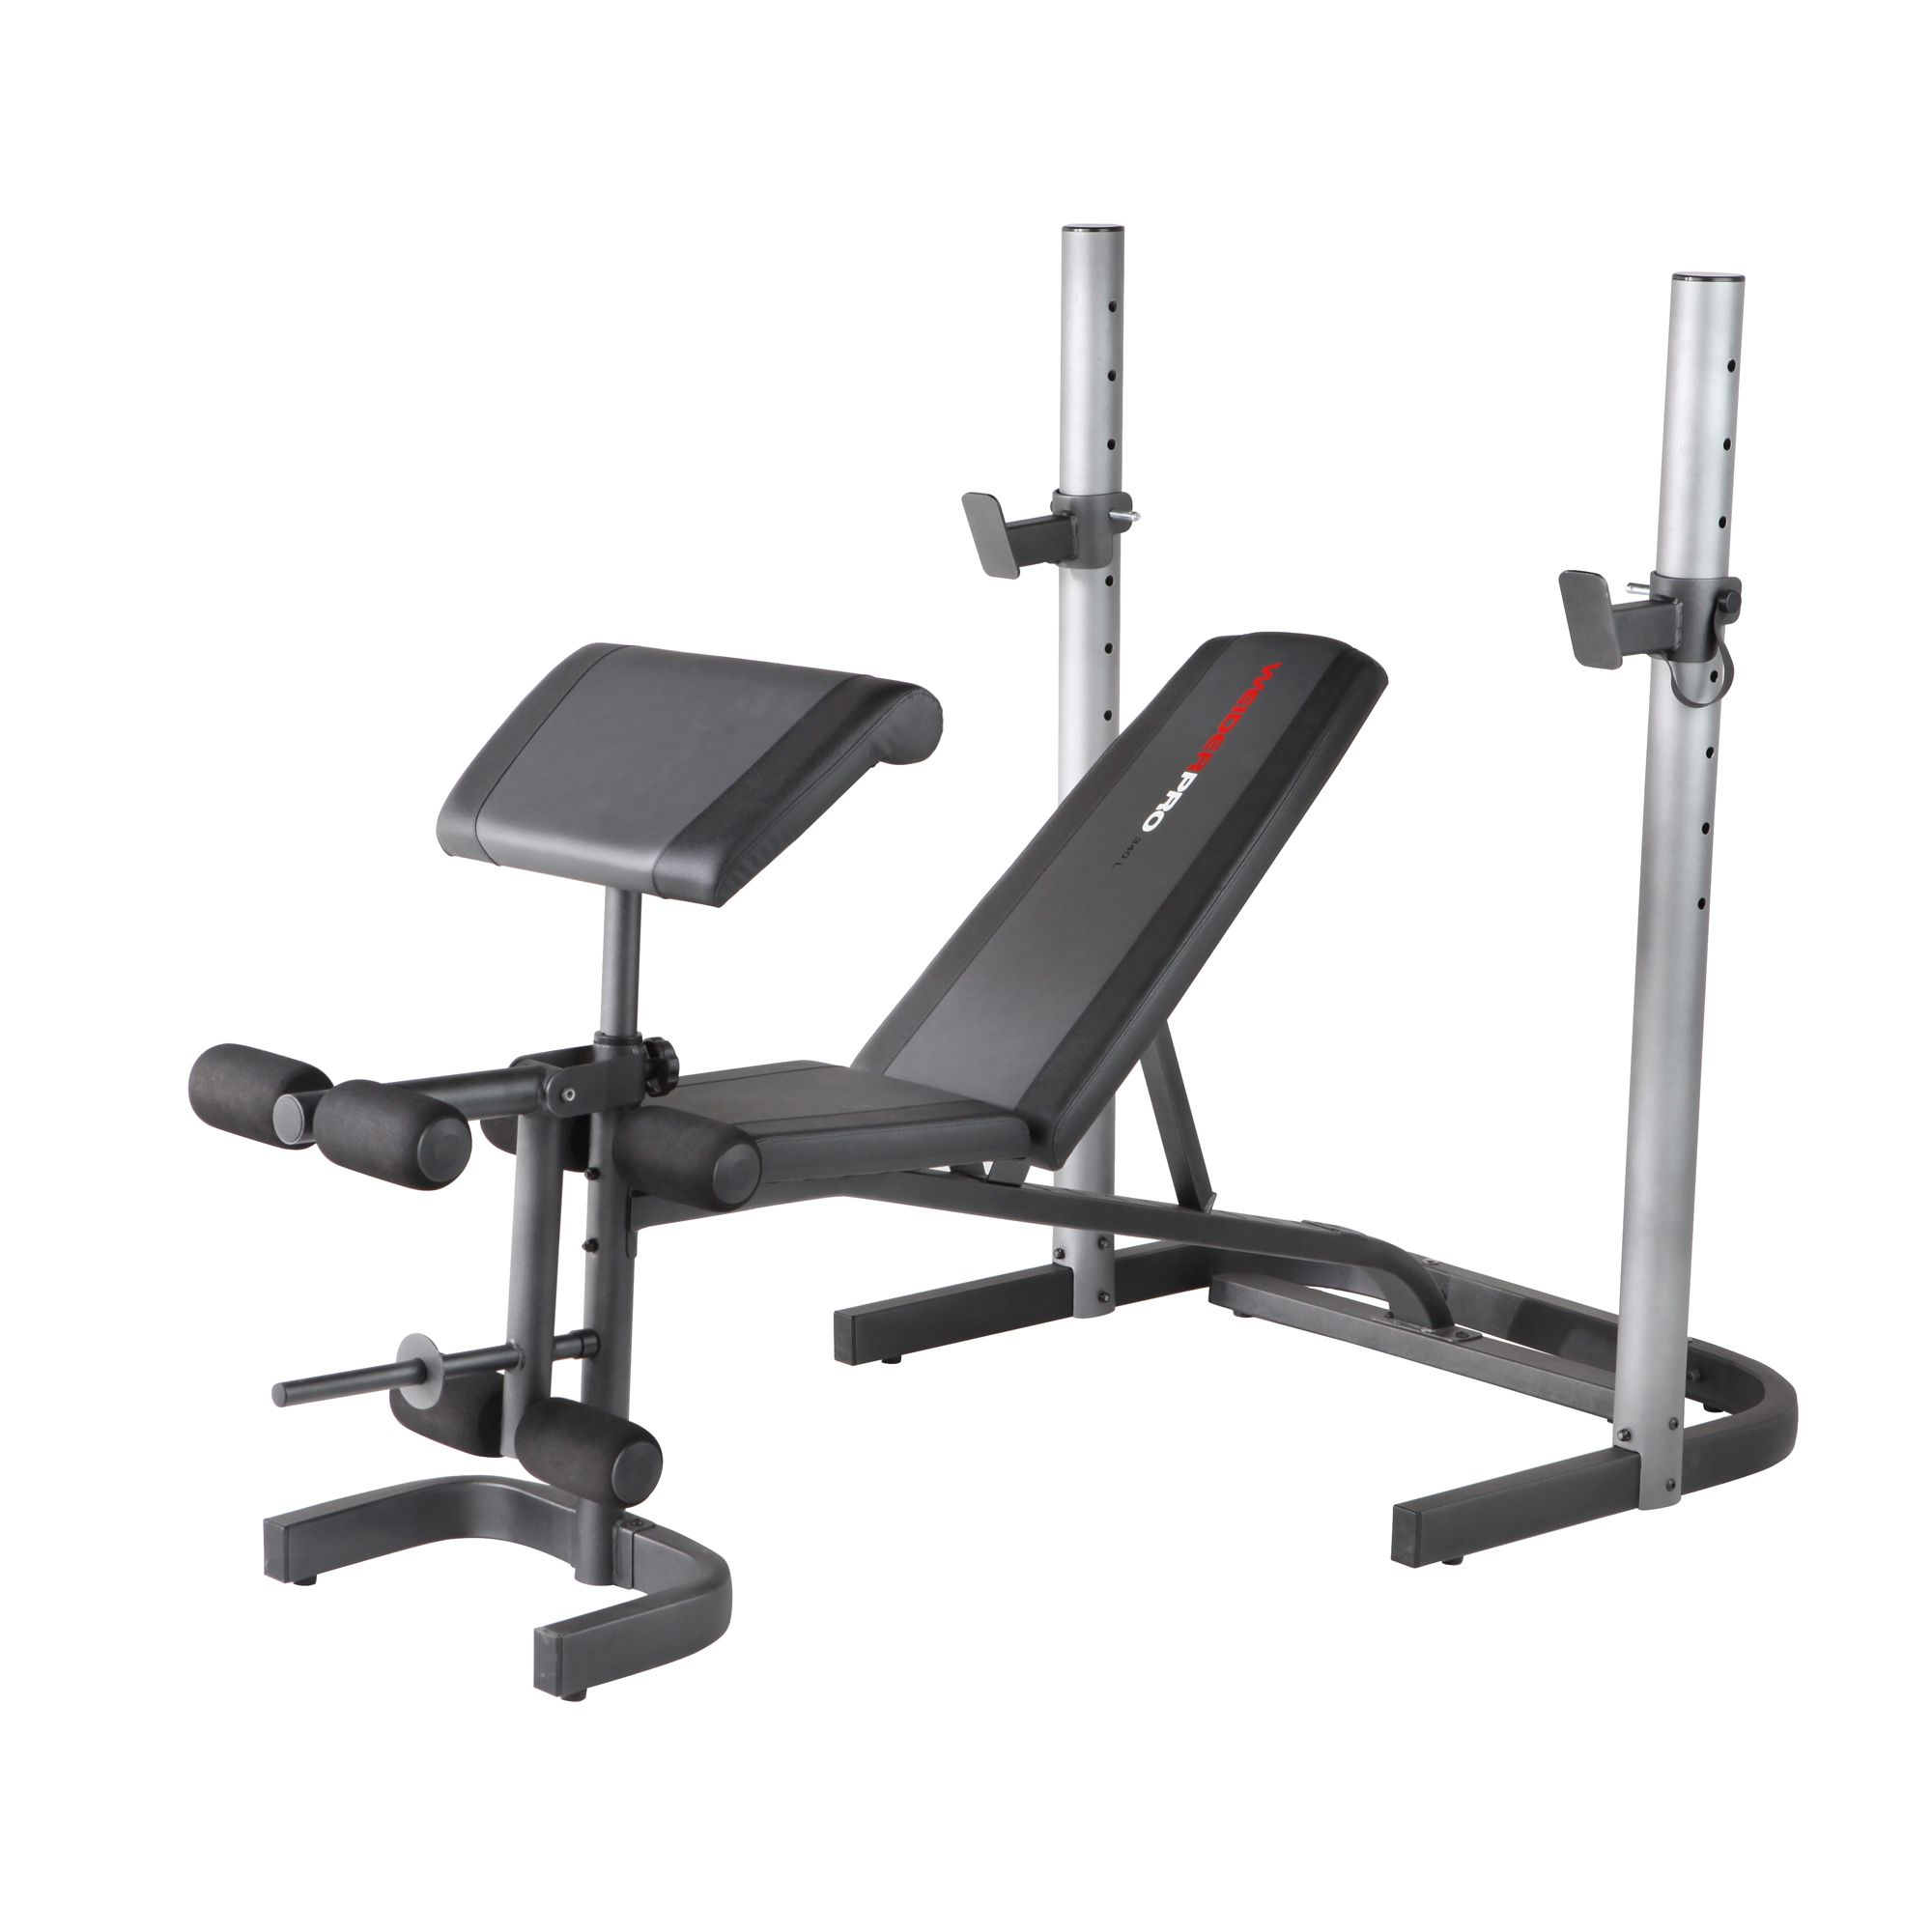 Weider Pro 340 Weight Bench Get Health Club Quality At